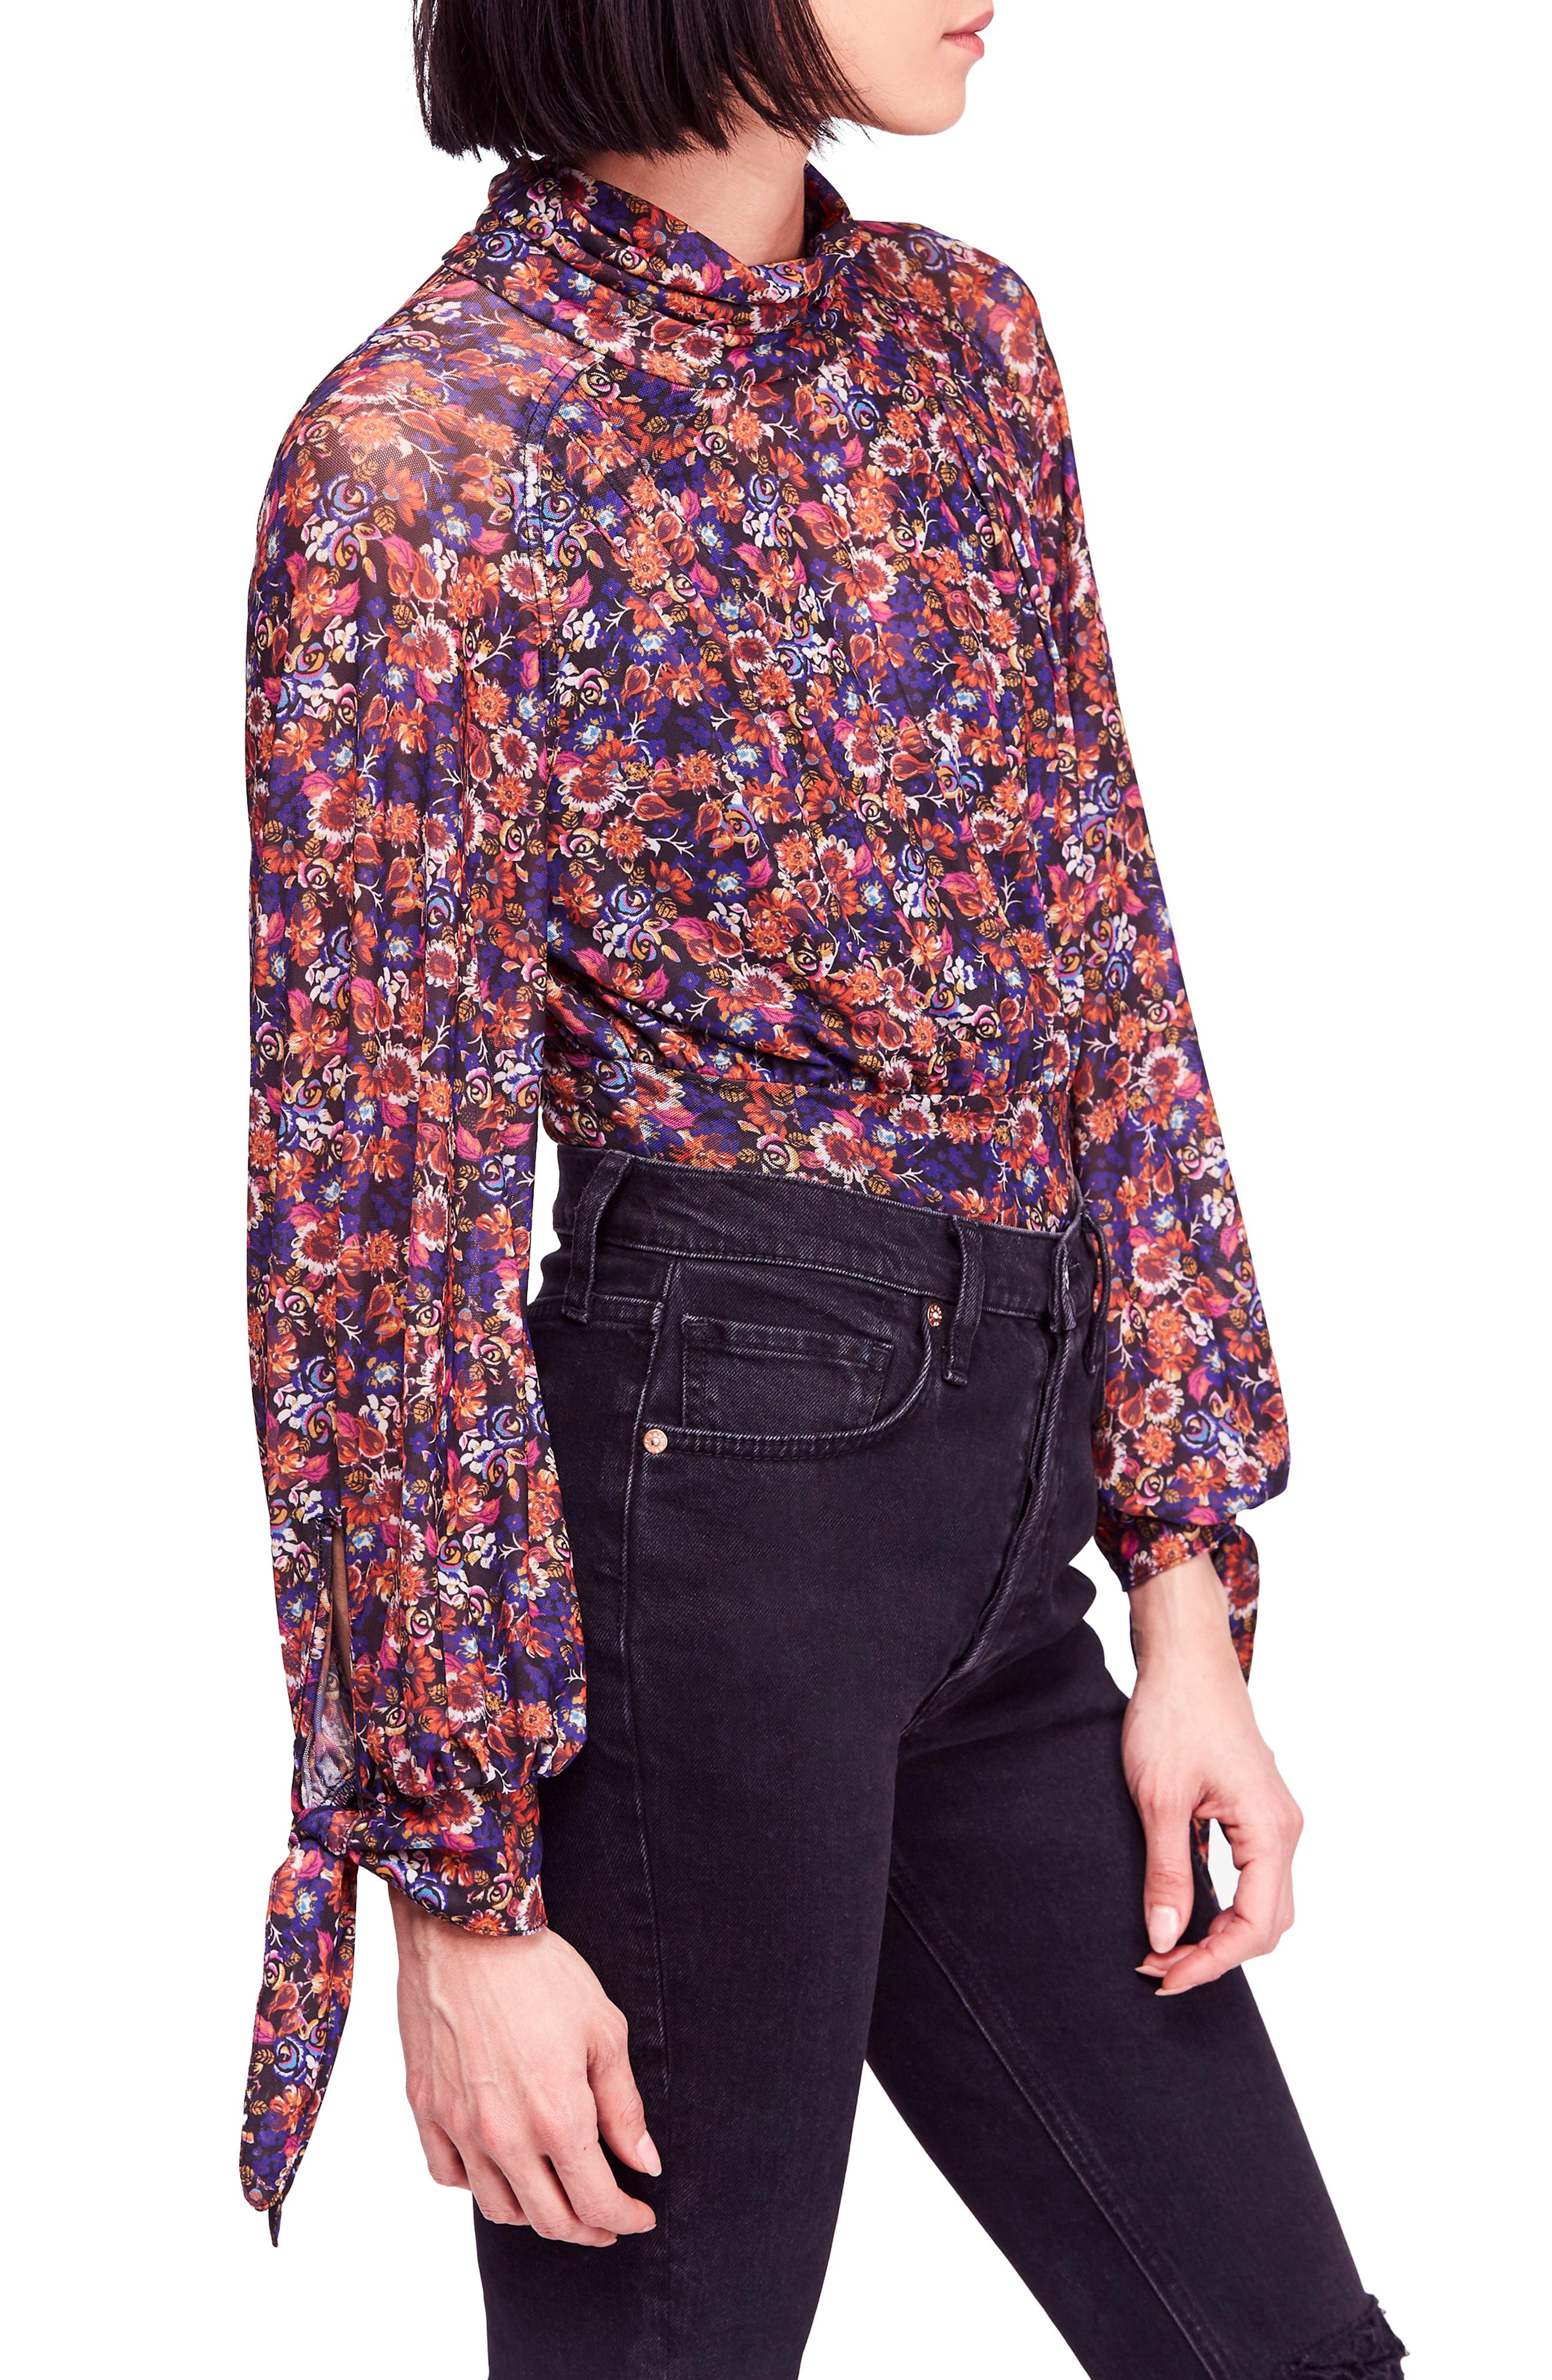 All Dolled Up Blouse,                             Alternate thumbnail 3, color,                             BLACK COMBO